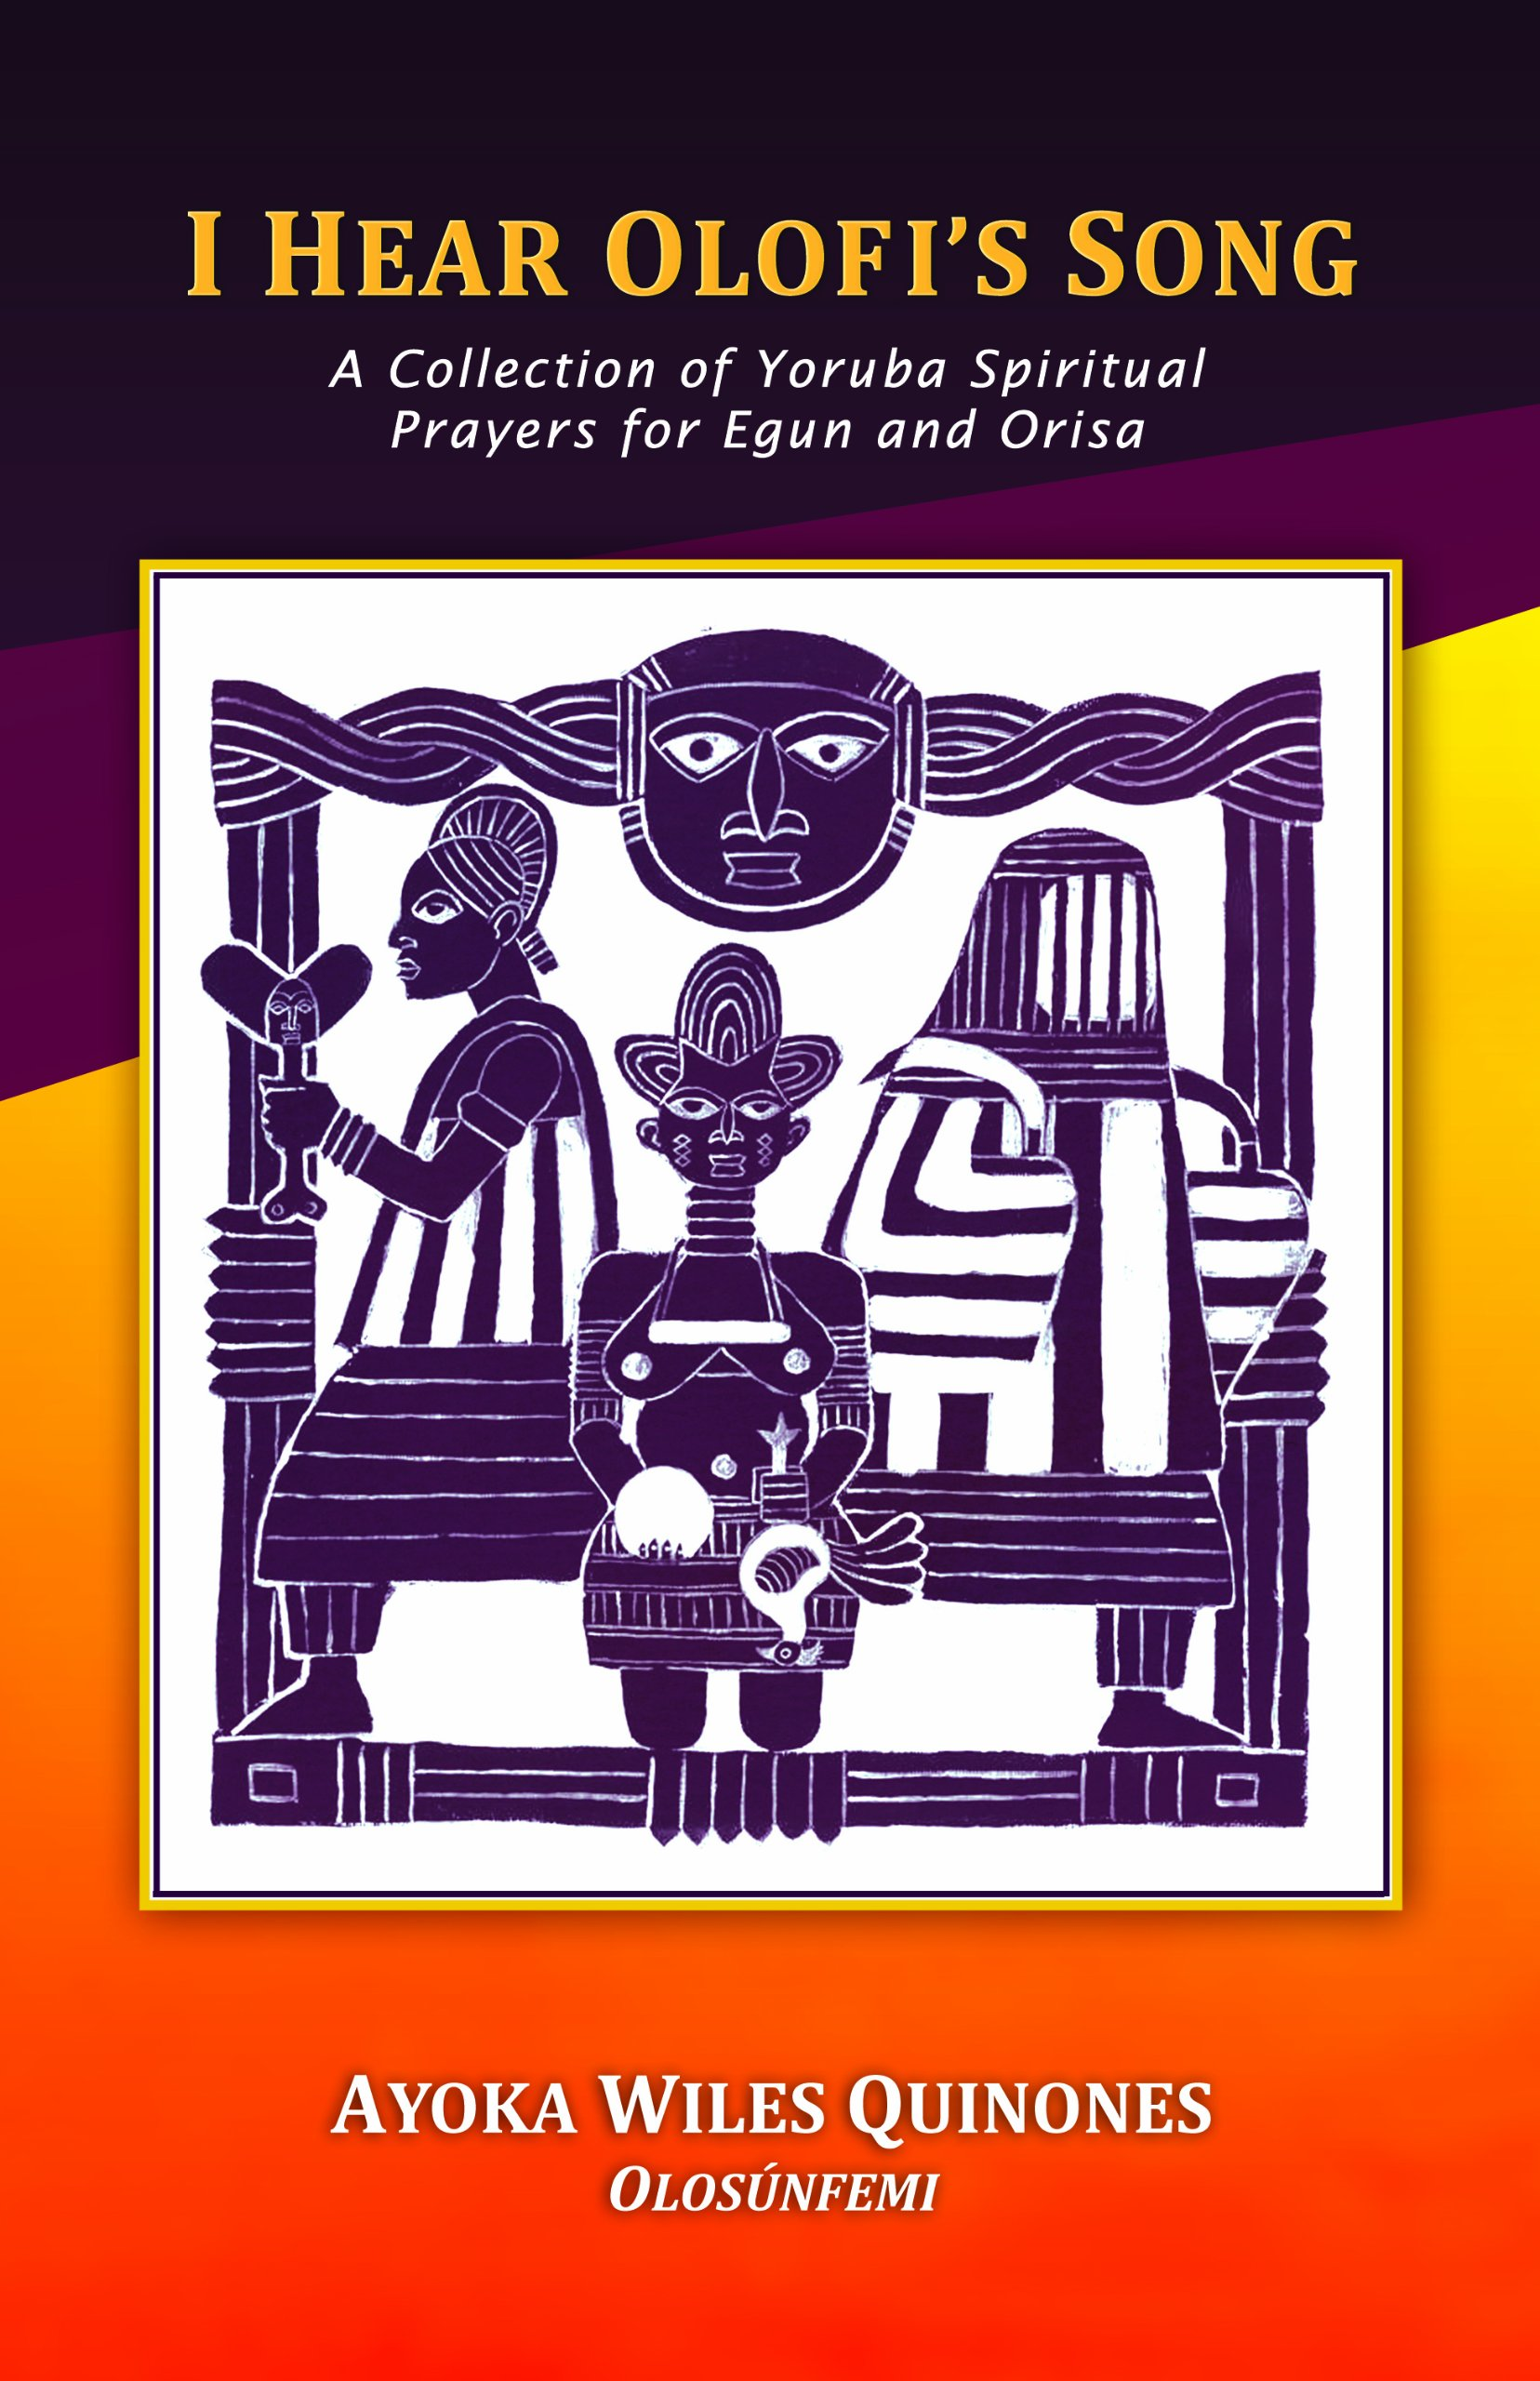 I Hear Olofis Song: A Collection of Yoruba Spiritual Prayers for Egun and Orisa